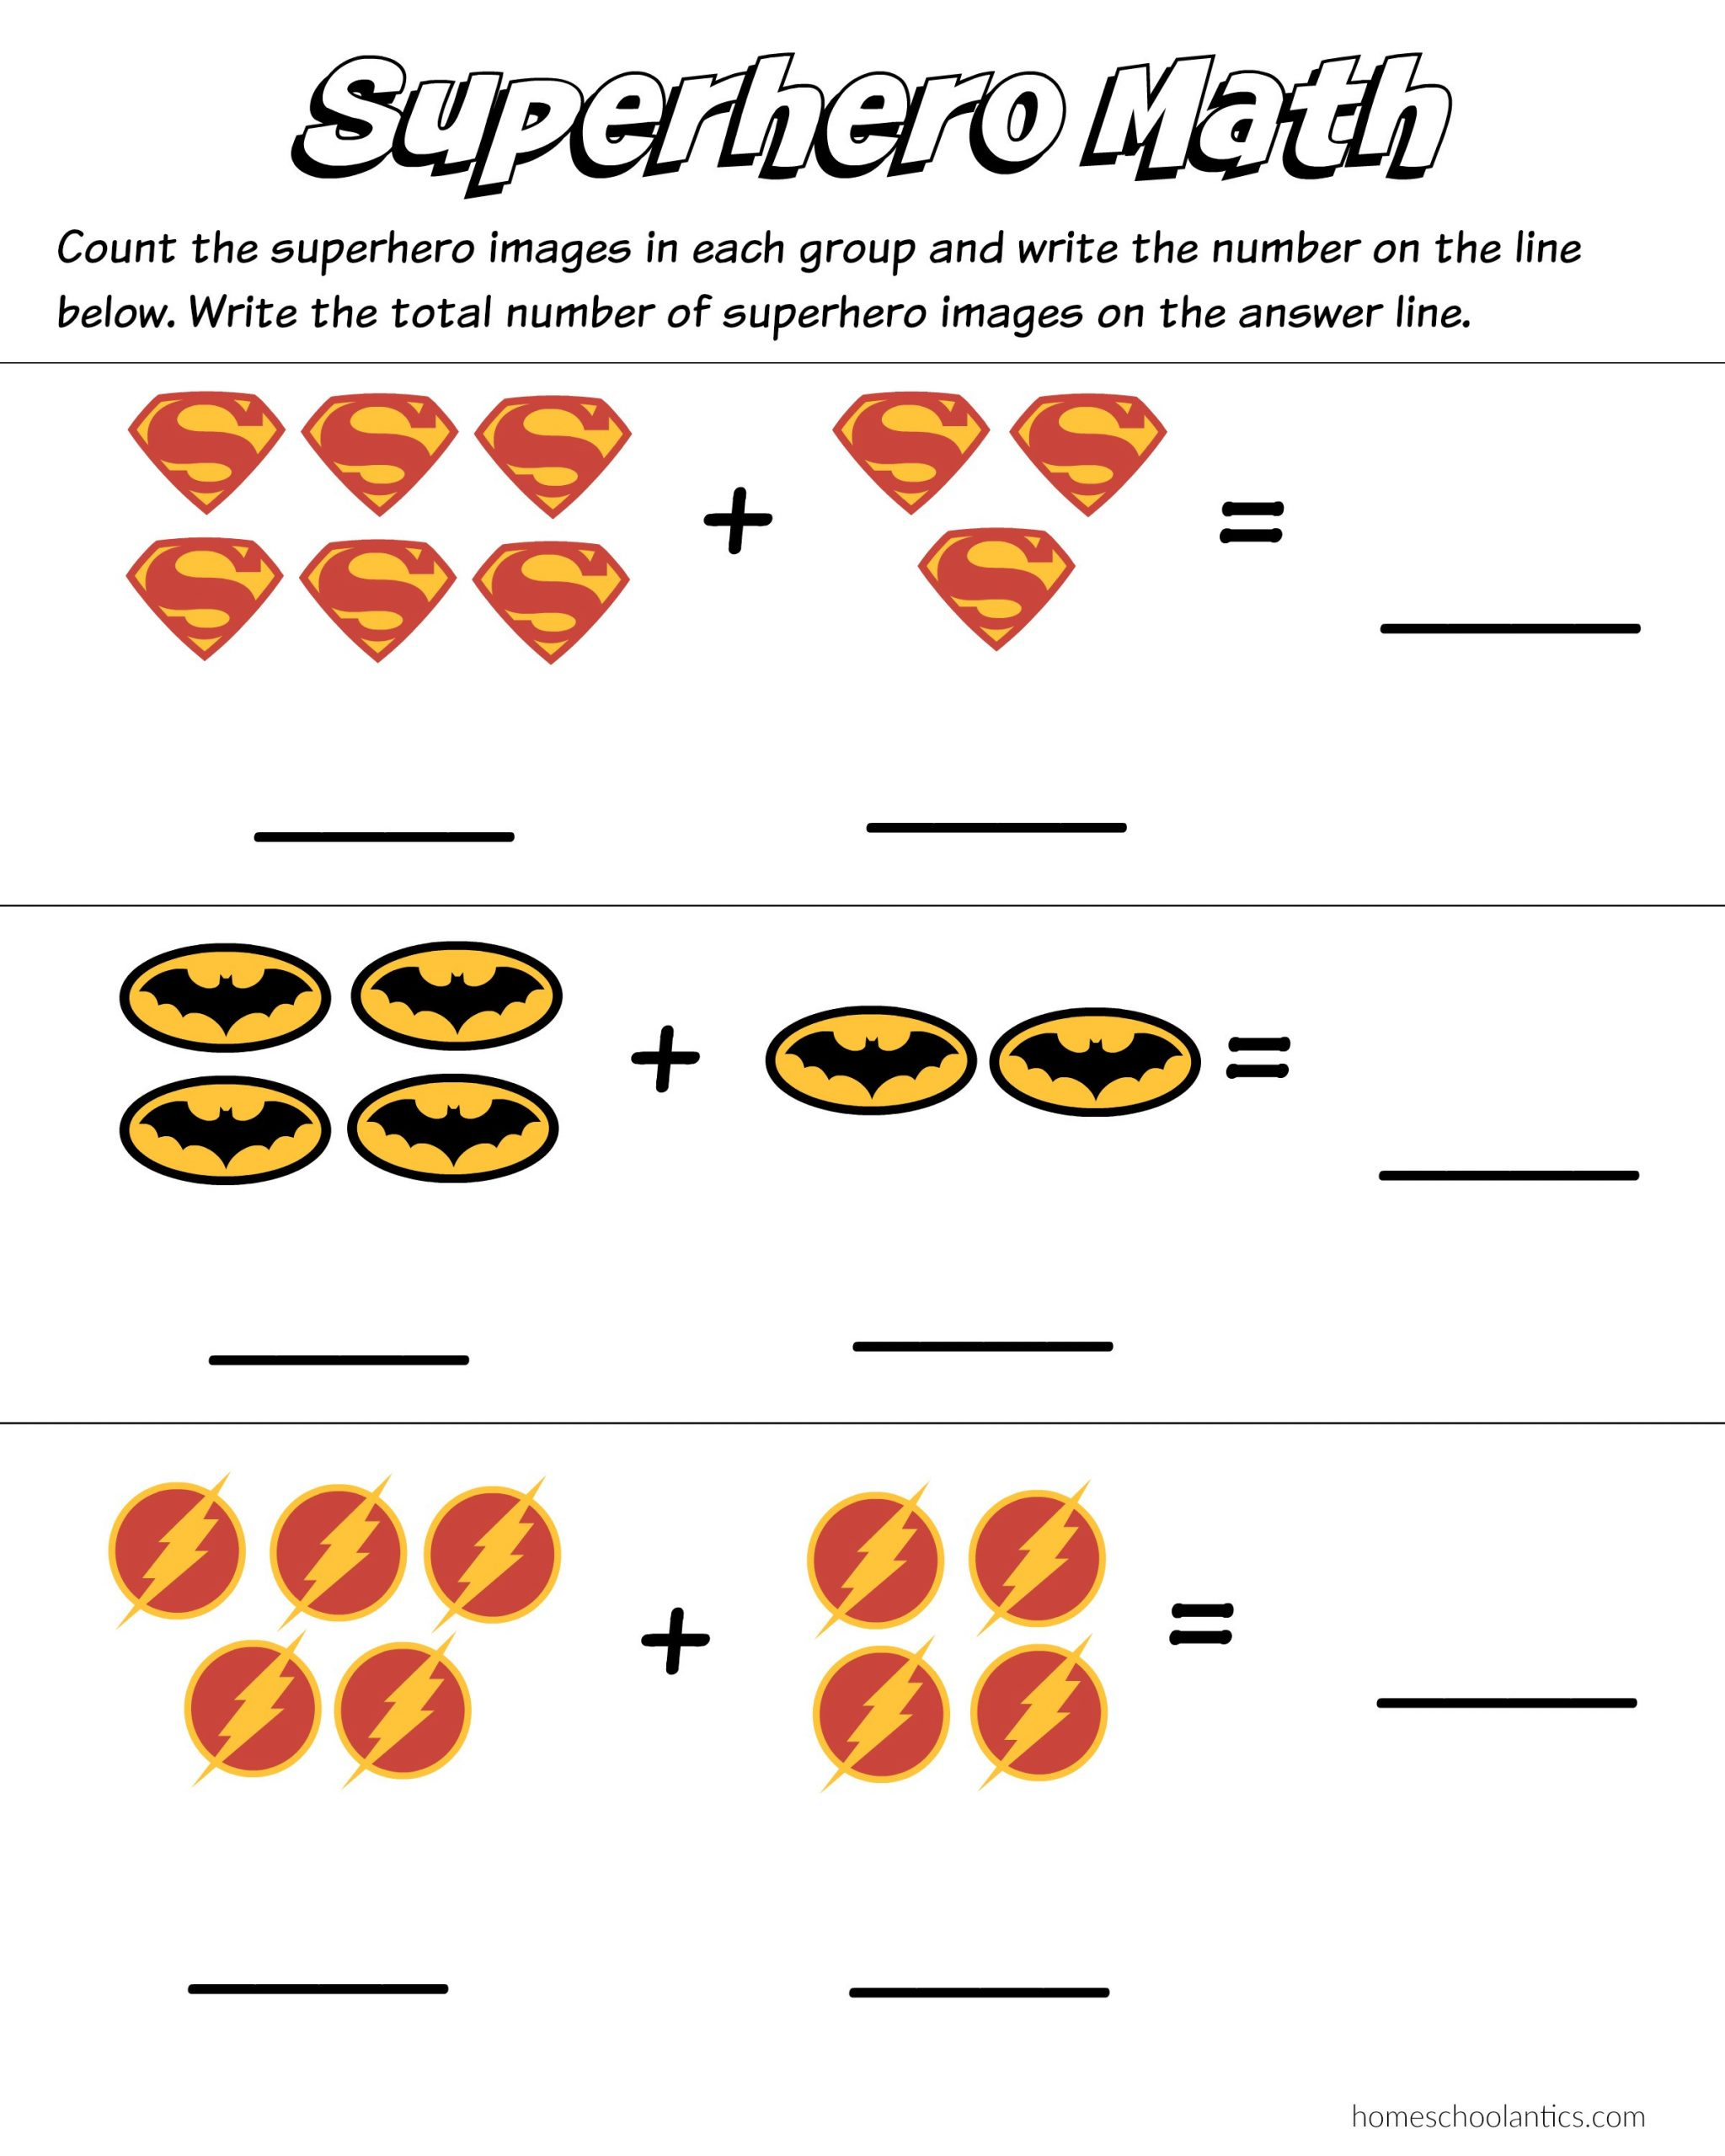 Kindergarten Math Worksheet Addition Superhero Math Kindergarten Addition Worksheet Printables